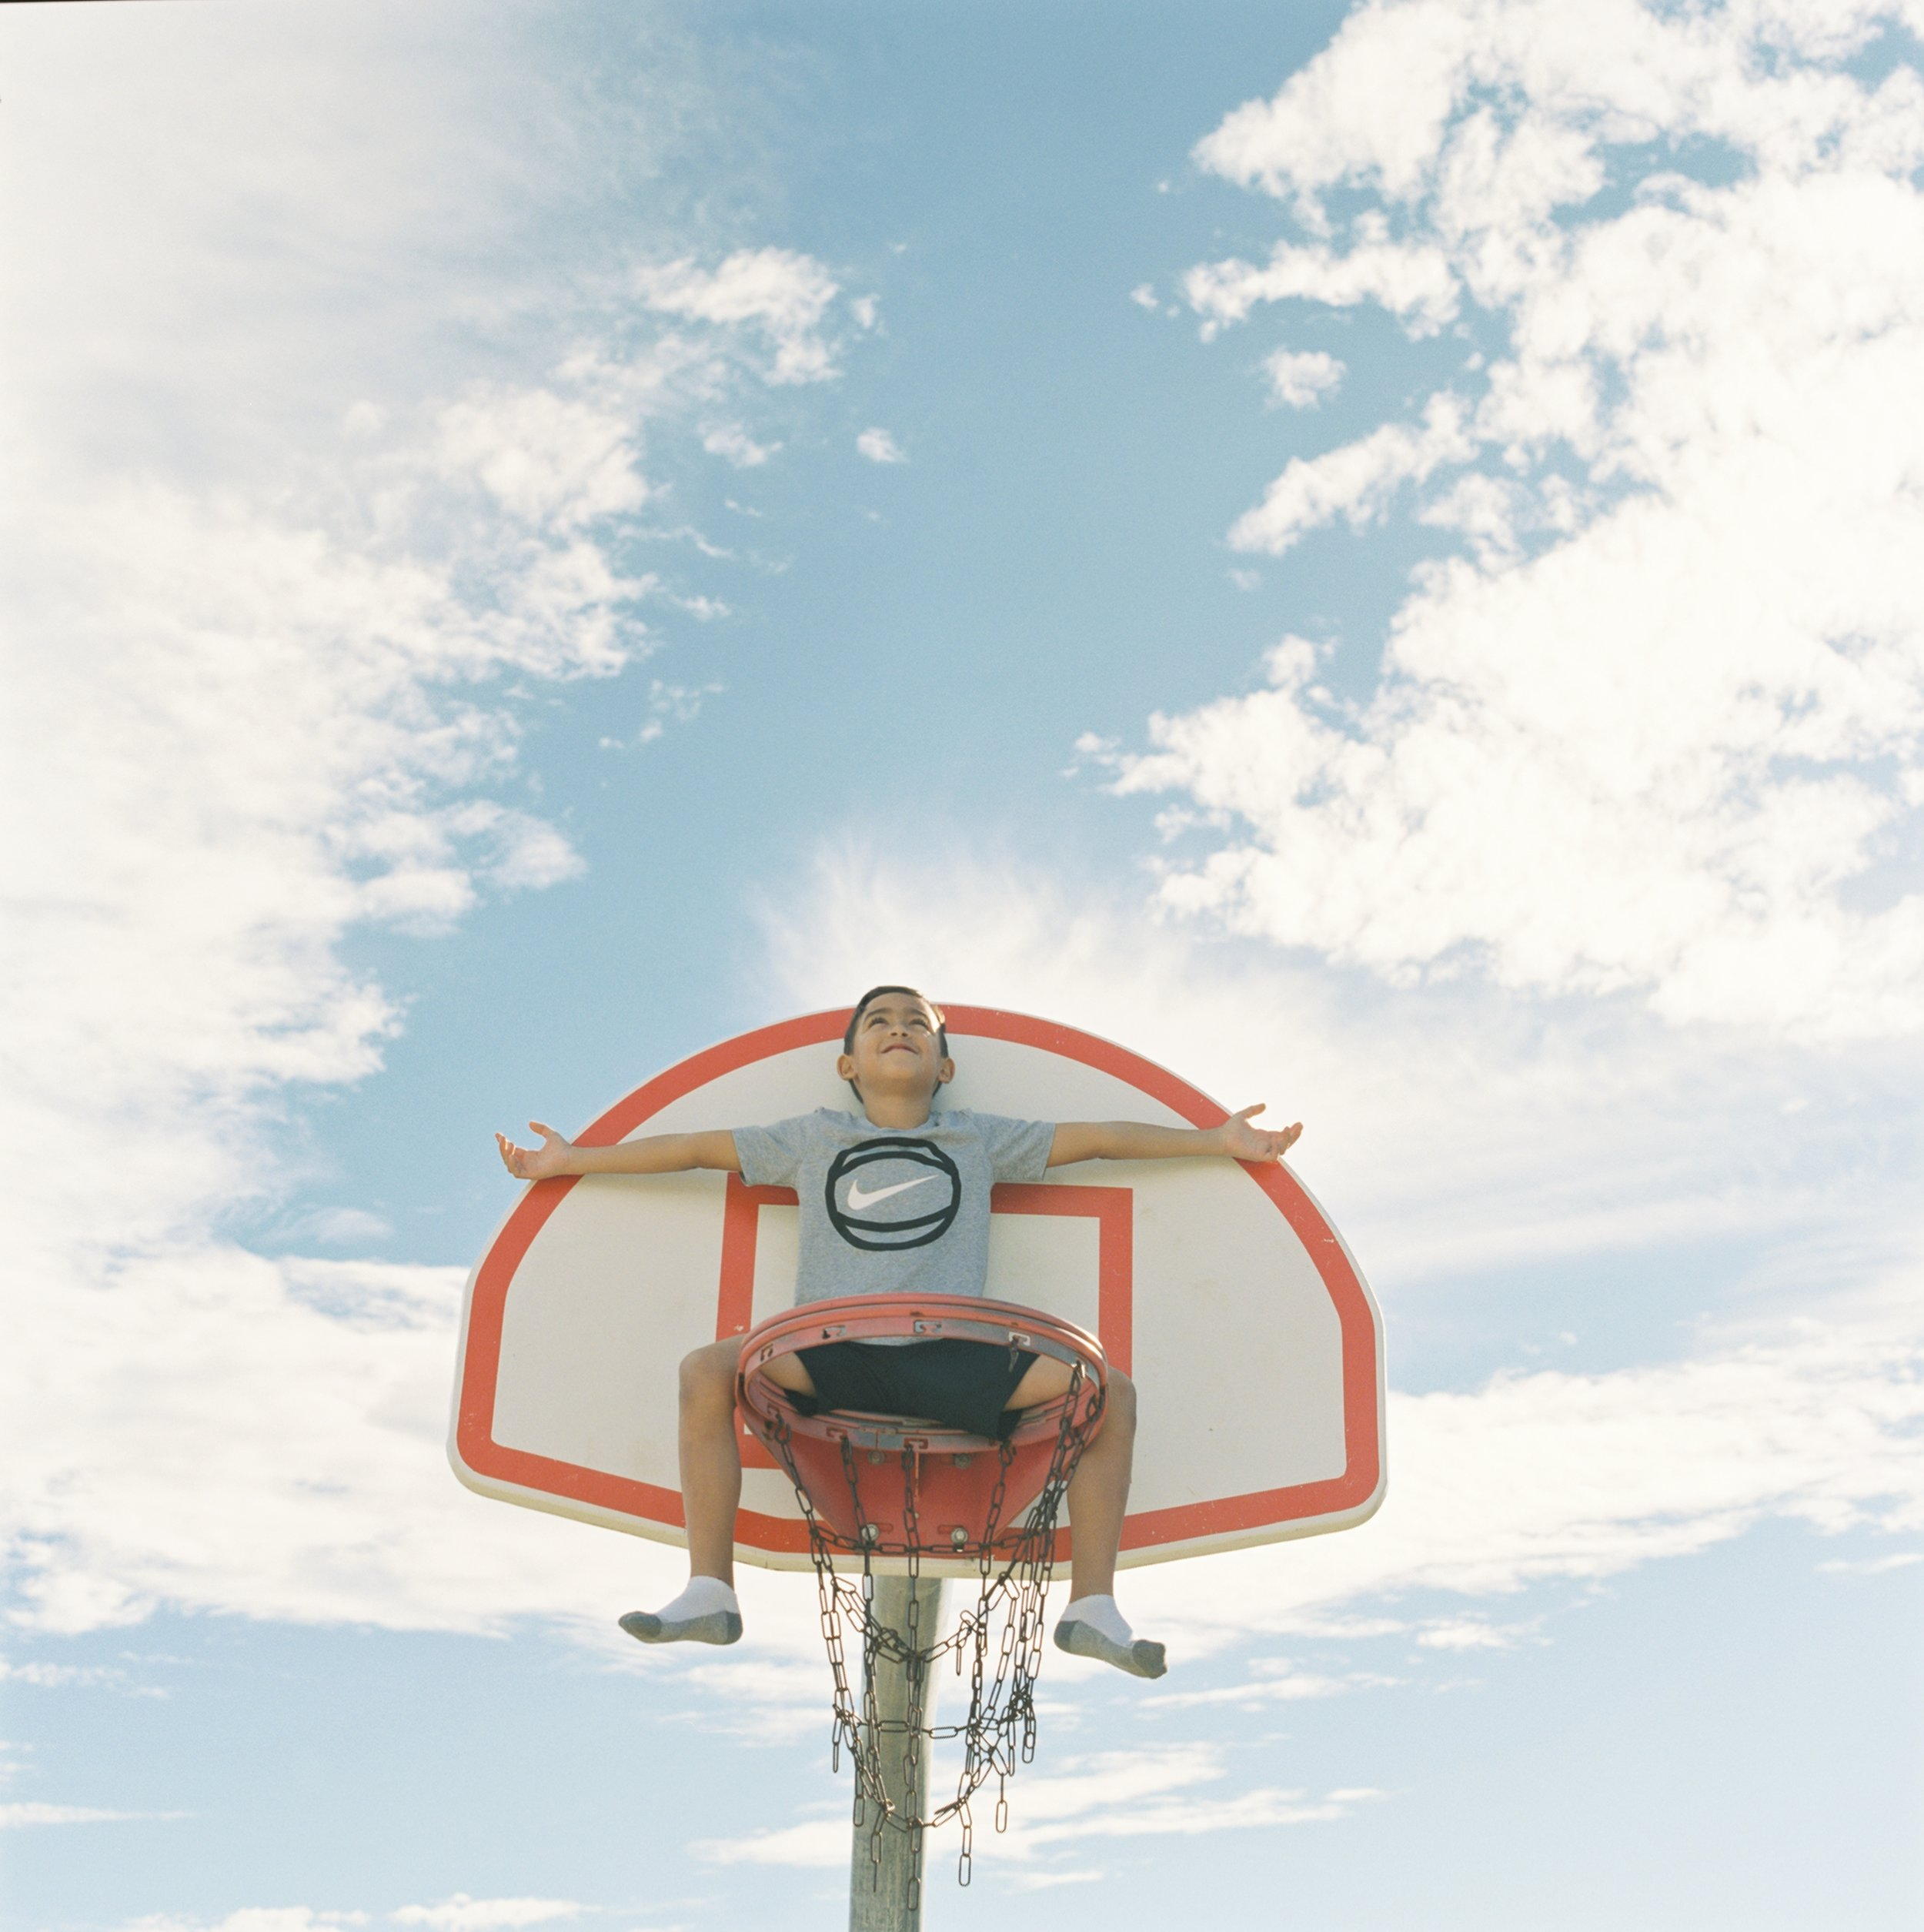 Sebastian sits on the basket in the sky. Dallas, TX 2017. Shot on a Hasselblad 501cm with Fuji Pro 400h film.